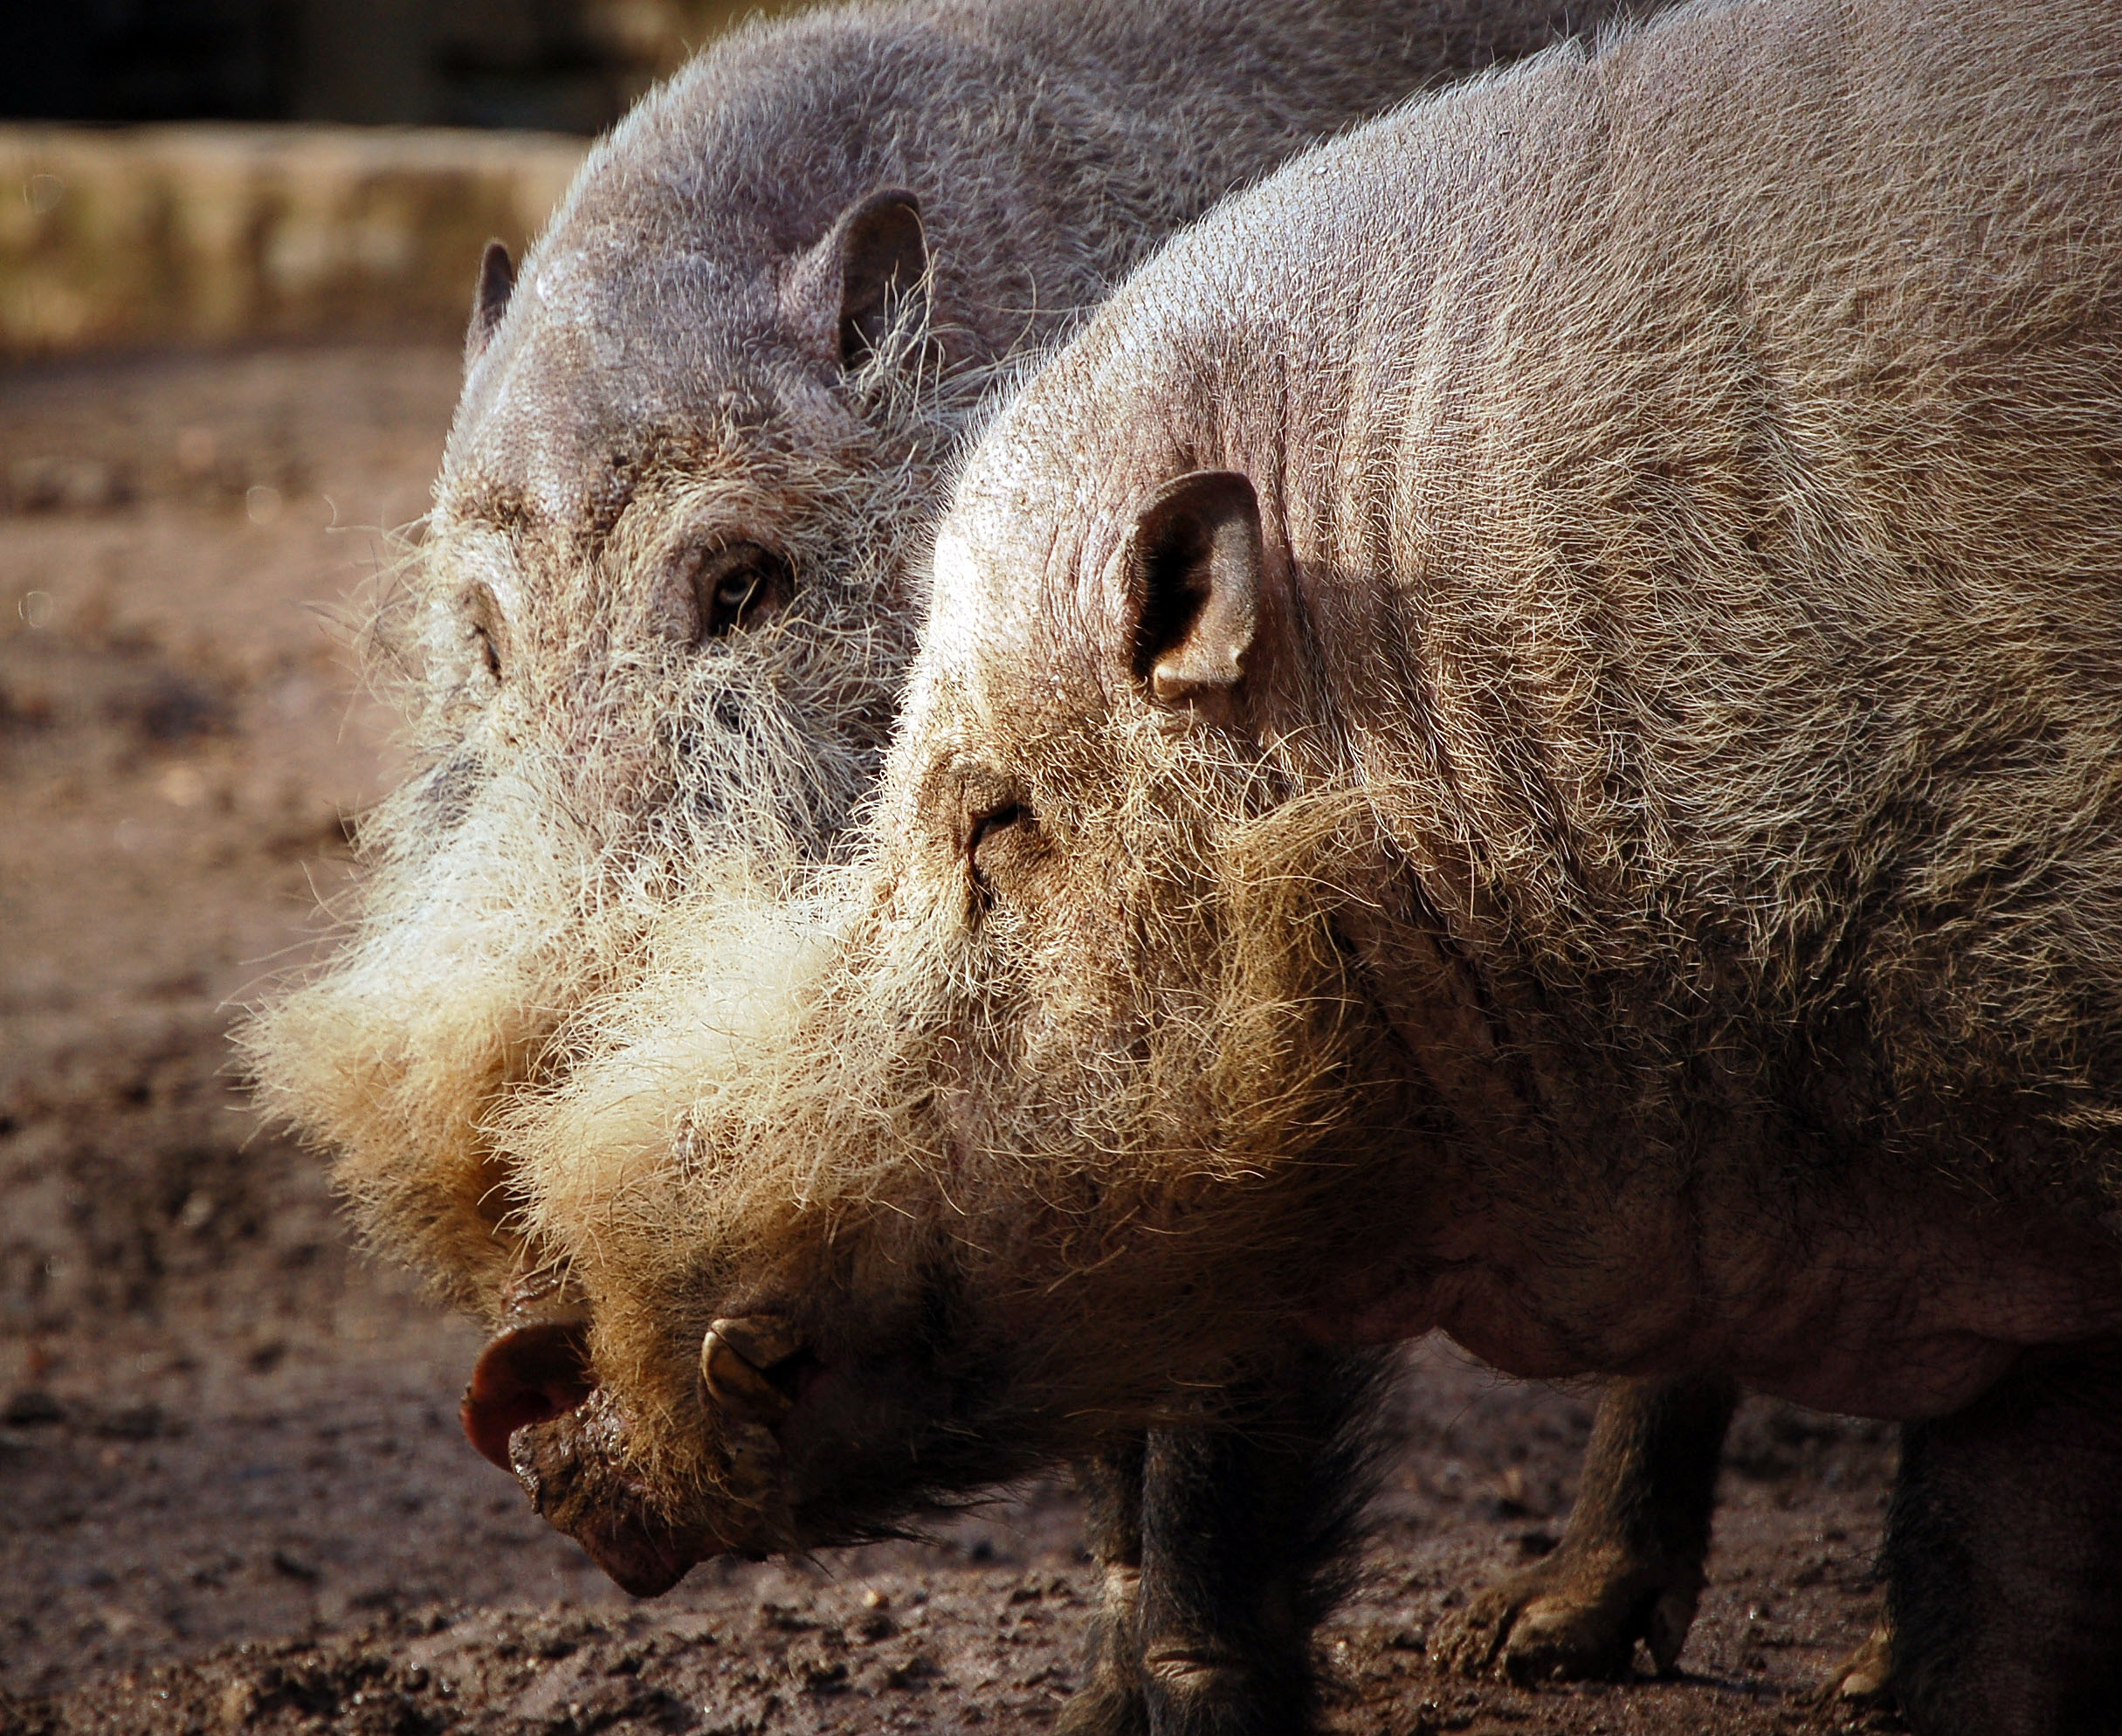 http://upload.wikimedia.org/wikipedia/commons/3/37/Bearded_Pigs2.jpg